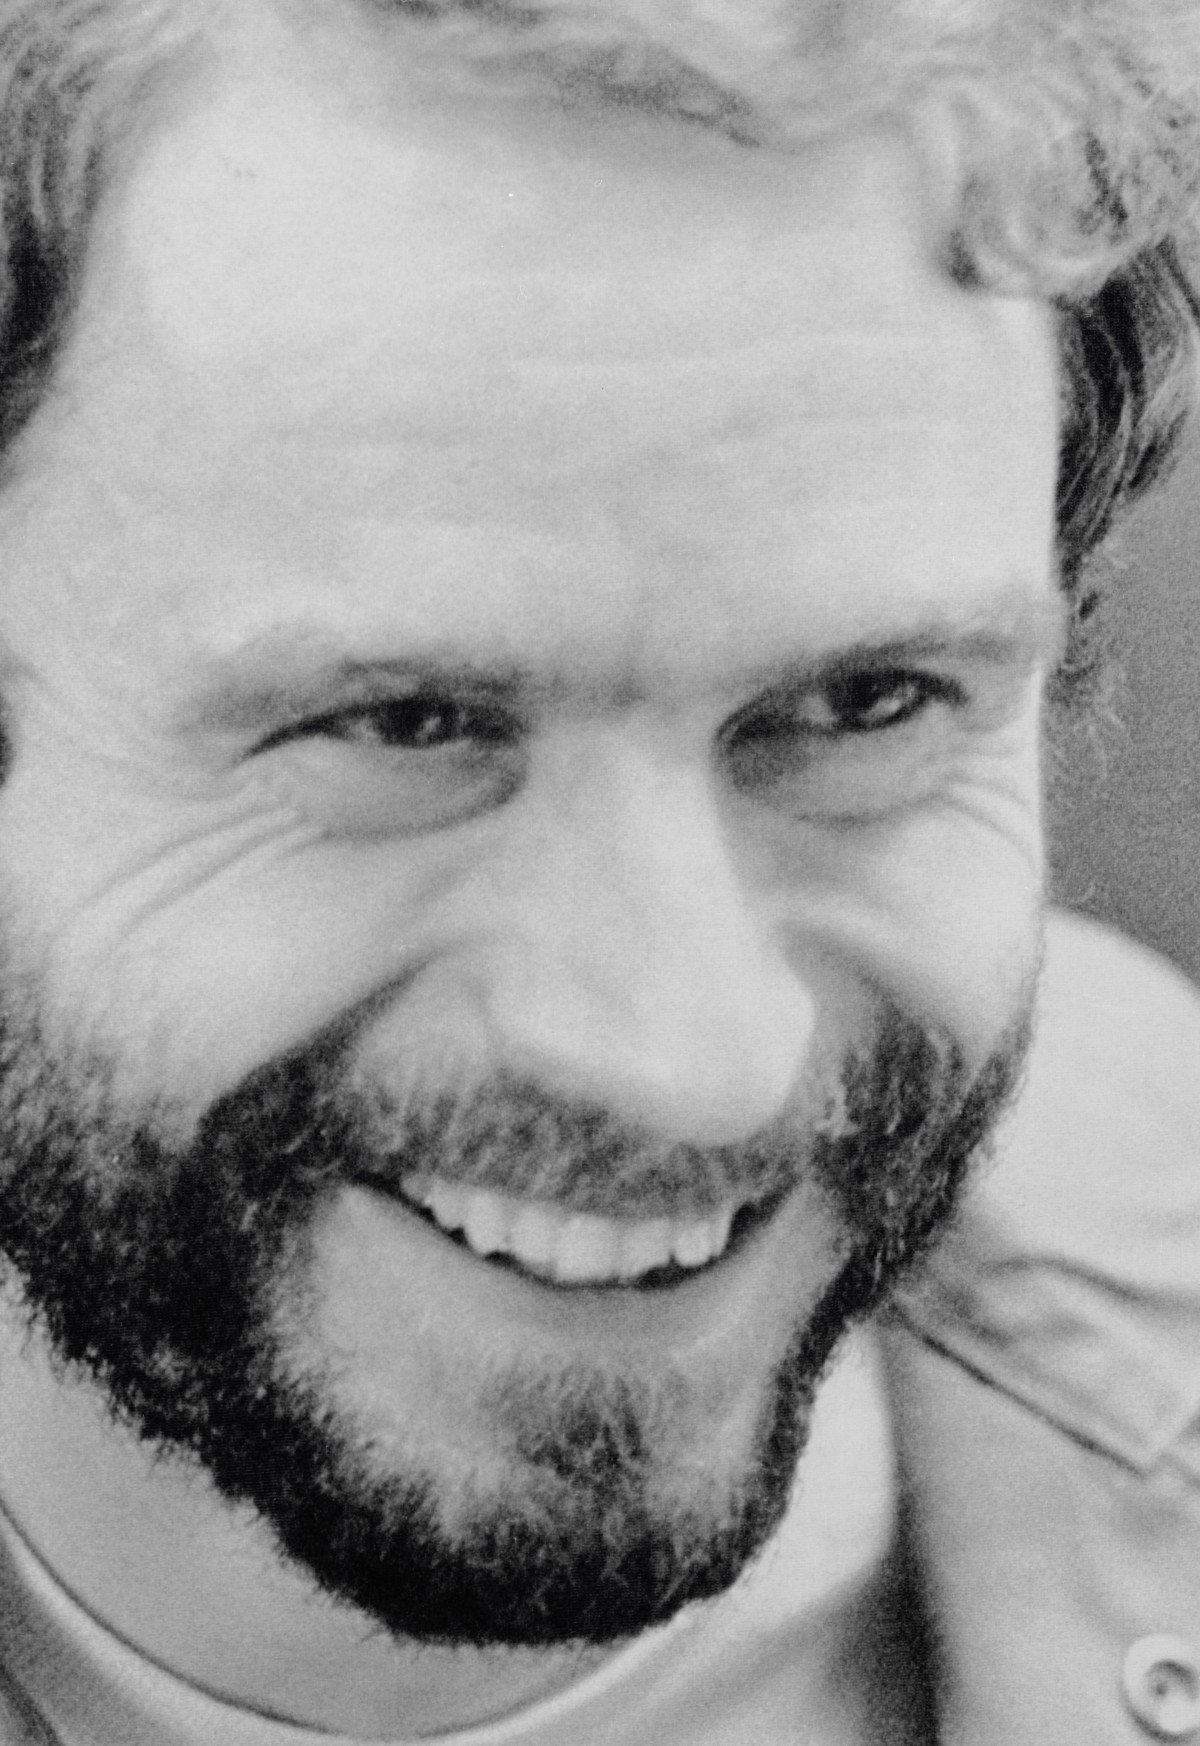 Notes on Ted Bundy - Damned Souls and How to Write About Them - Medium